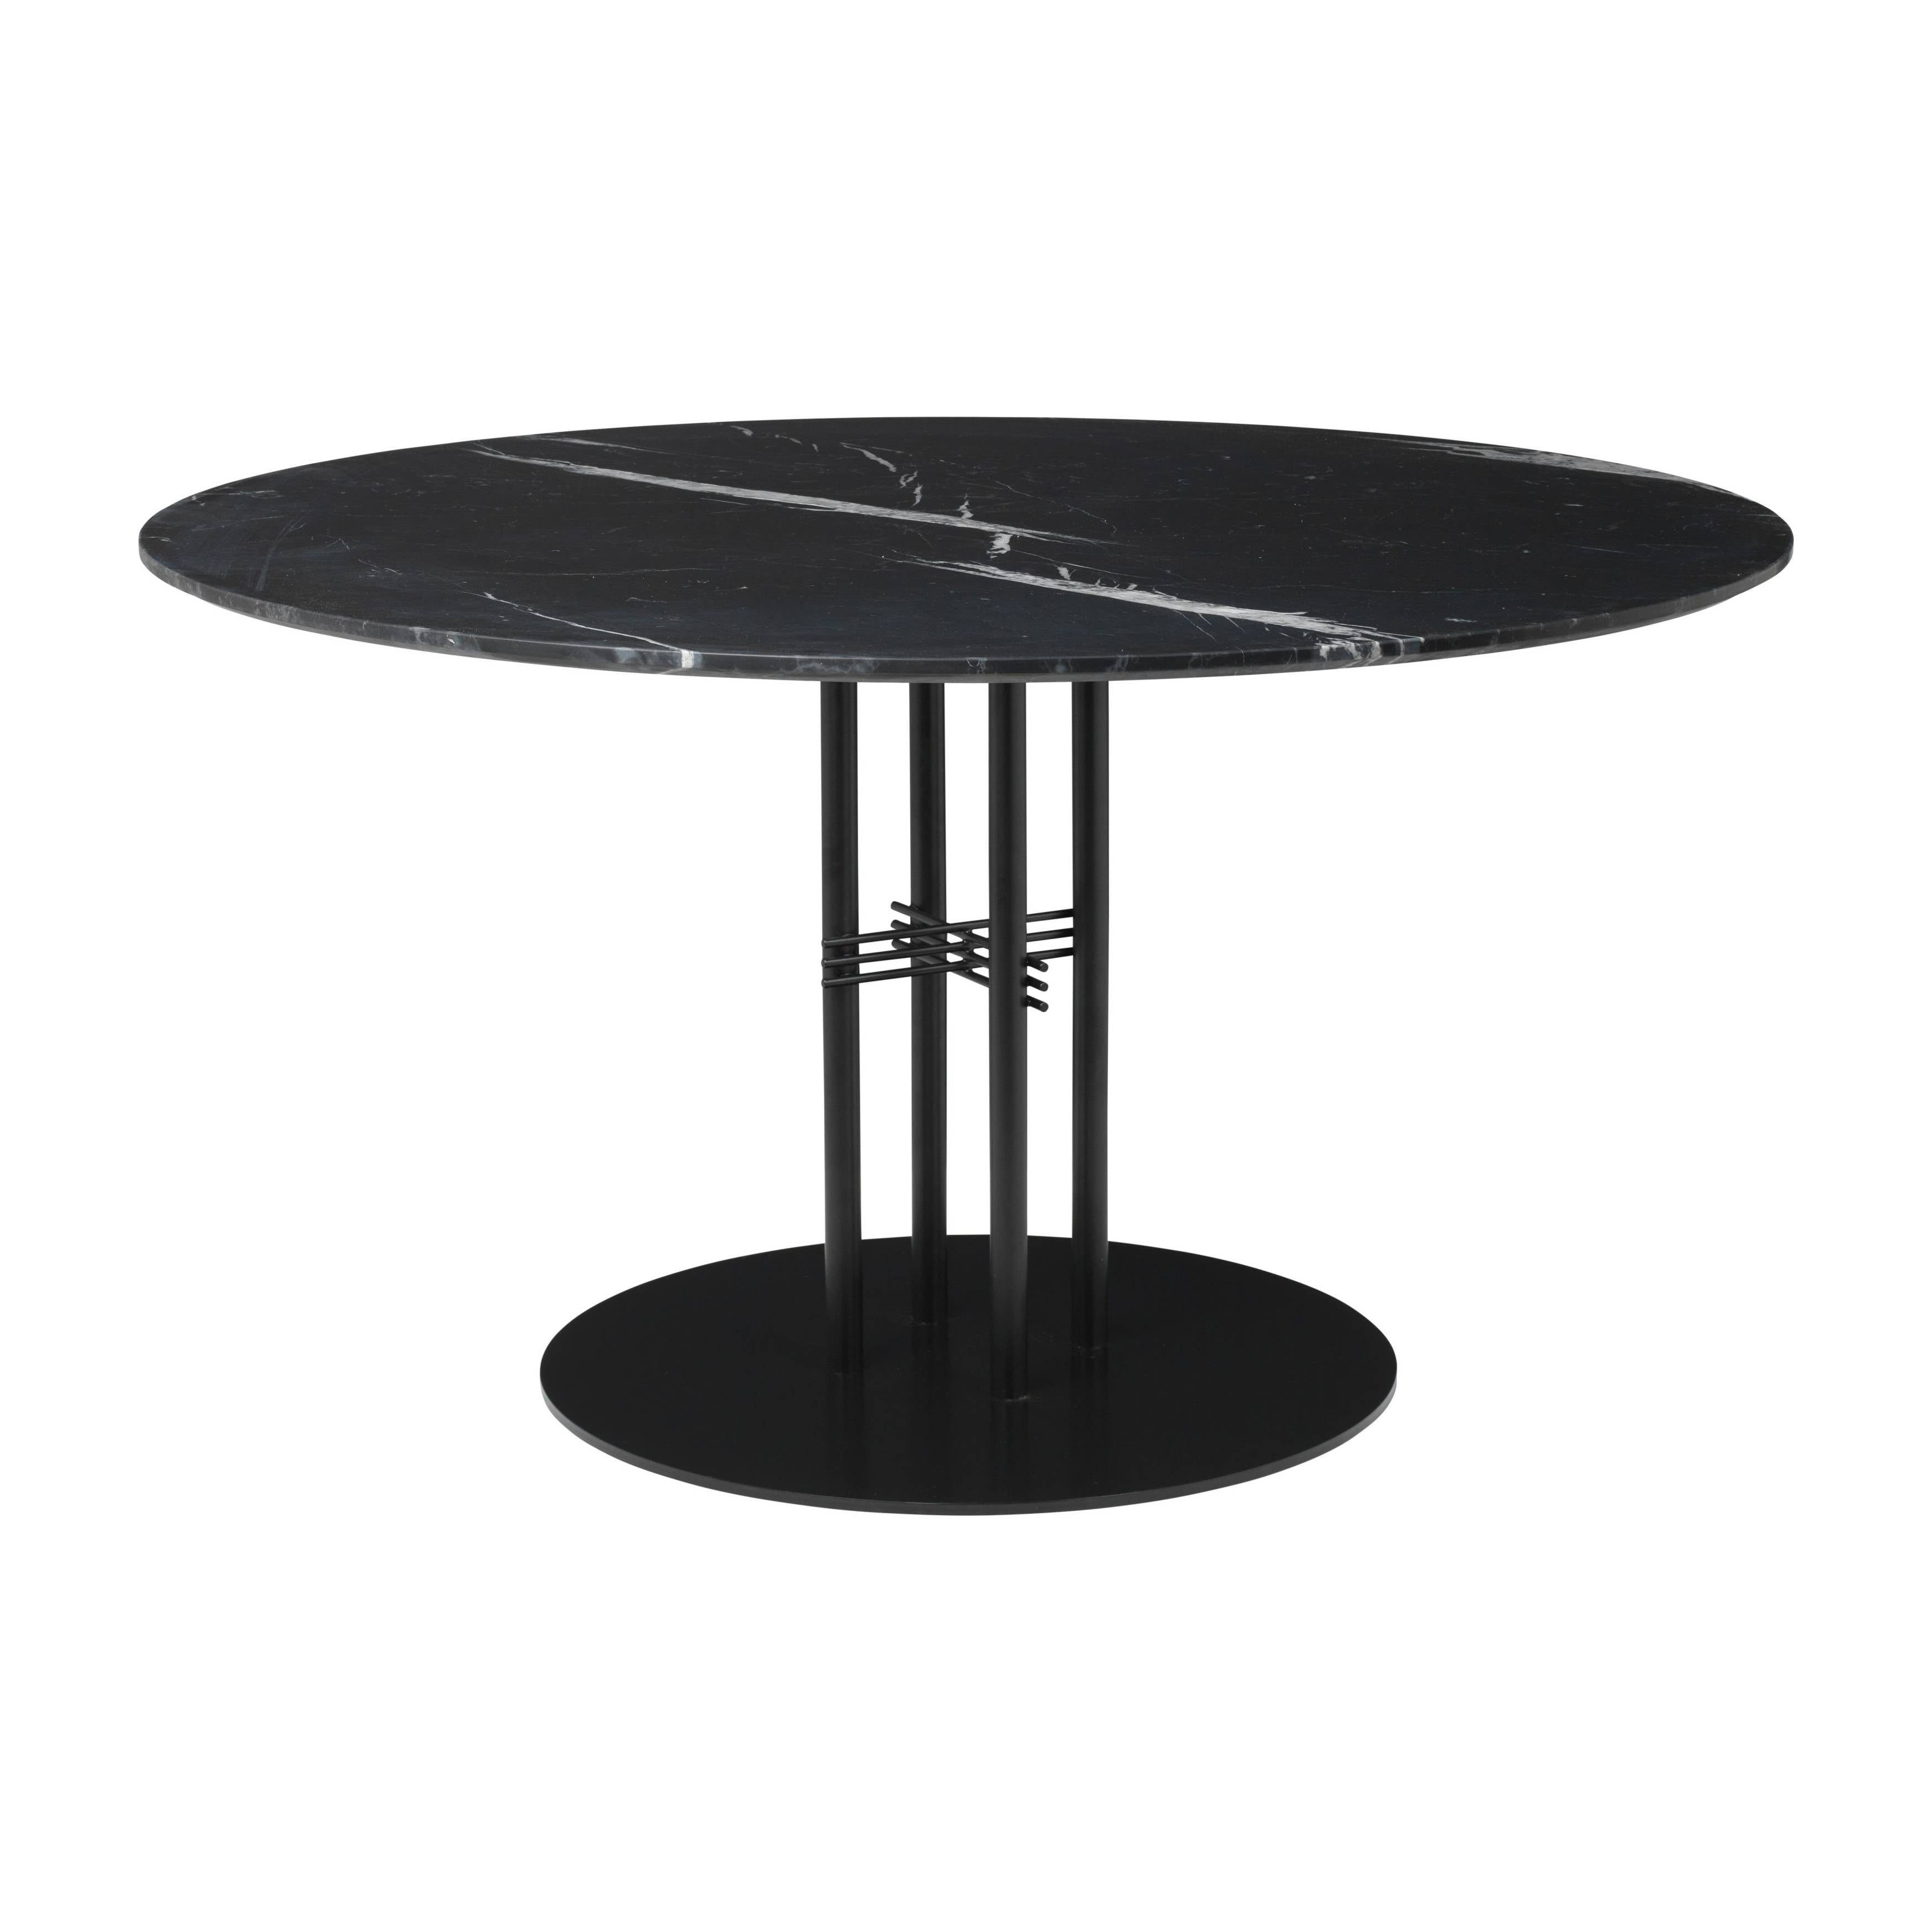 TS Column Dining Table: Large + Black Base + Black Marquina Marble